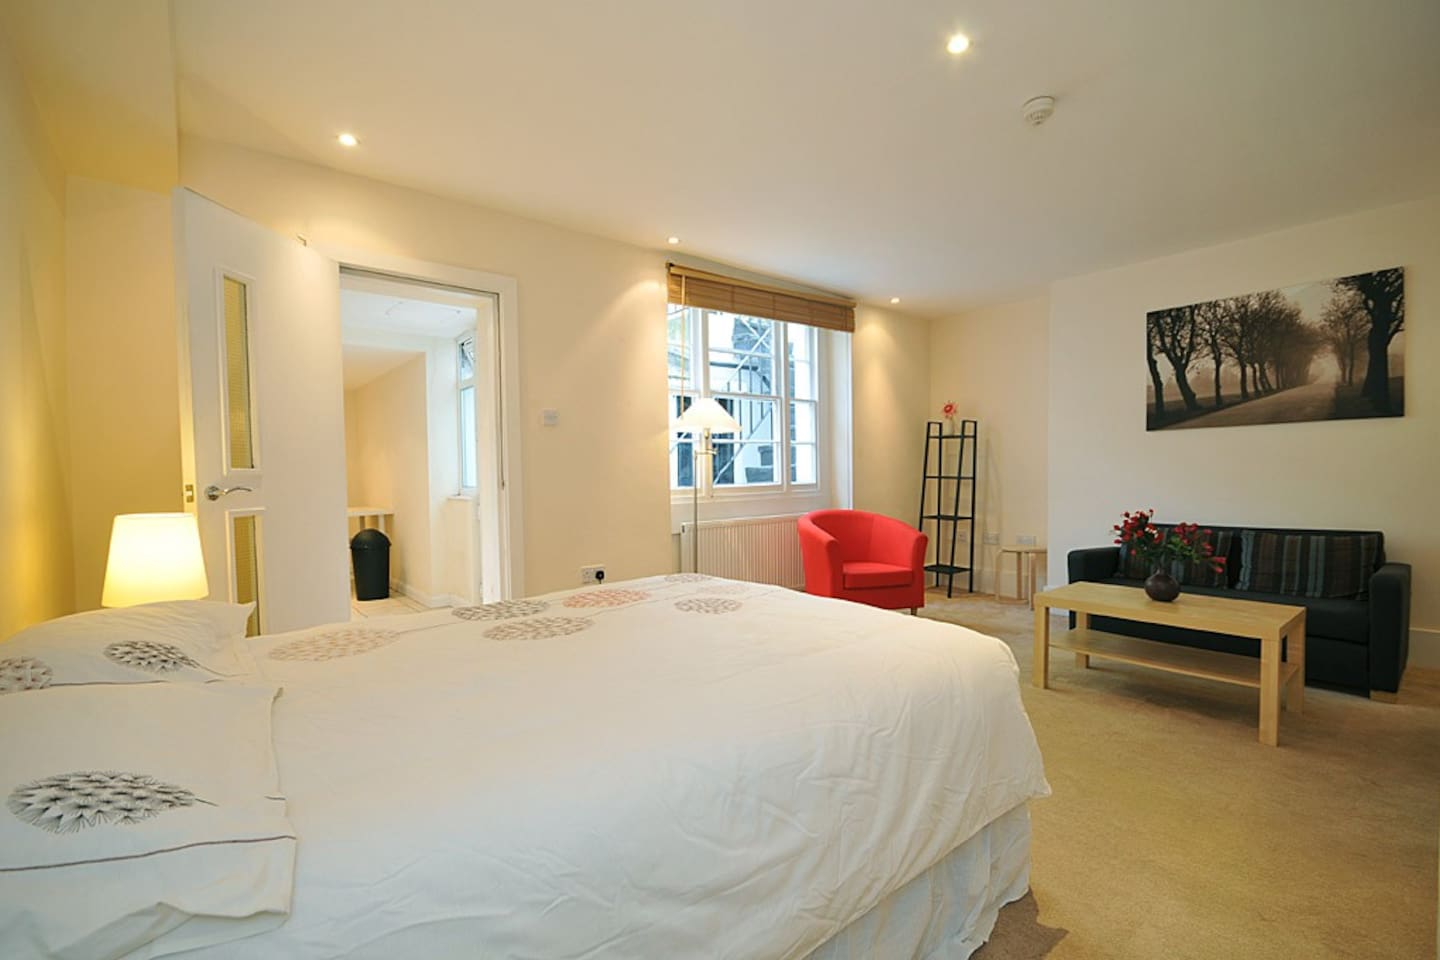 Large Studio in the heart of Bayswater